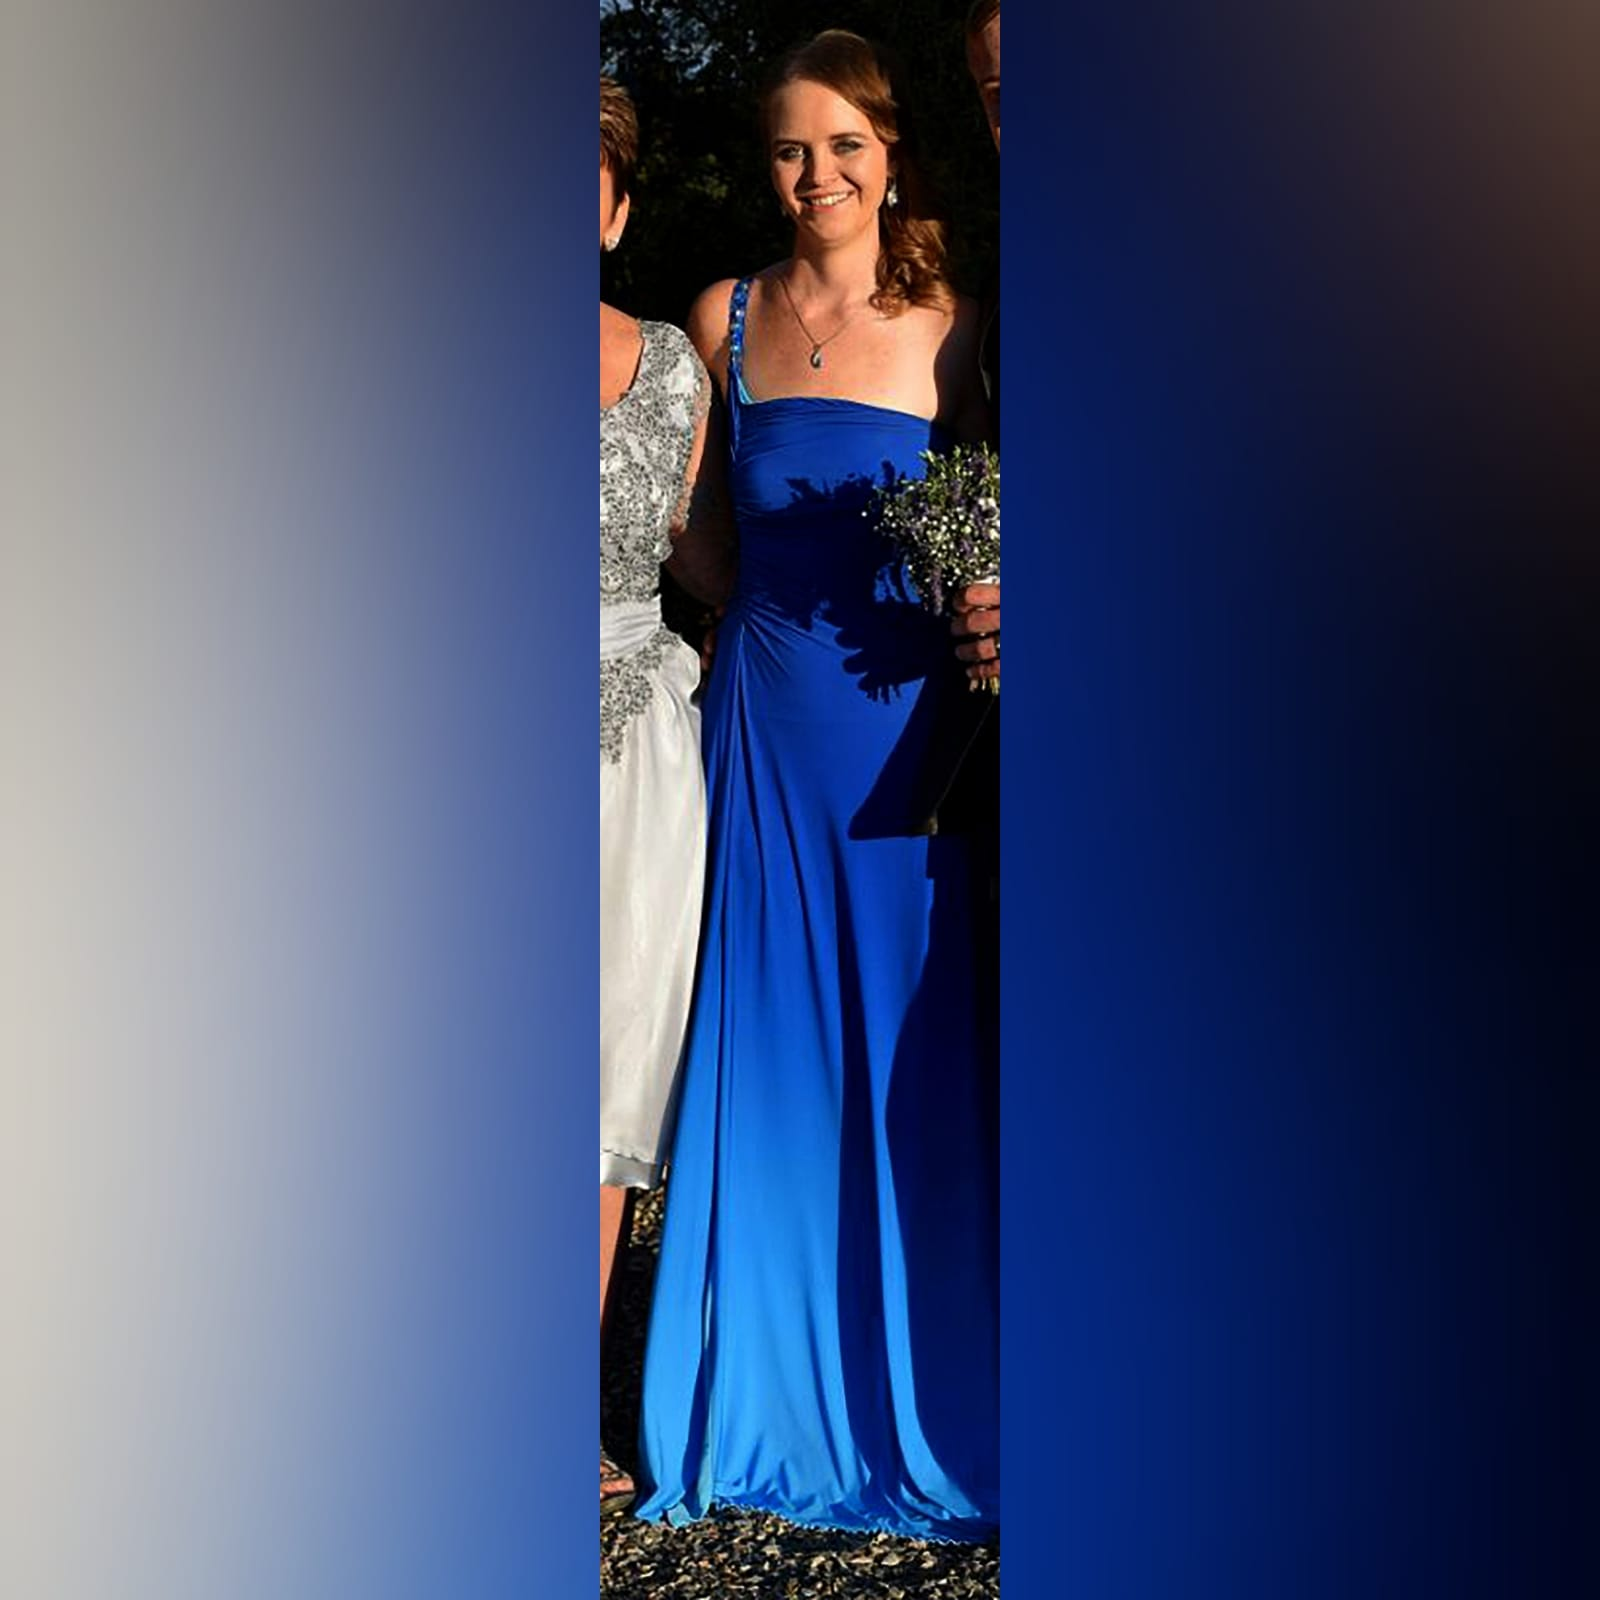 Blue ombre maid of honour dress 1 blue ombre maid of honour dress with a single beaded/bling shoulder design.